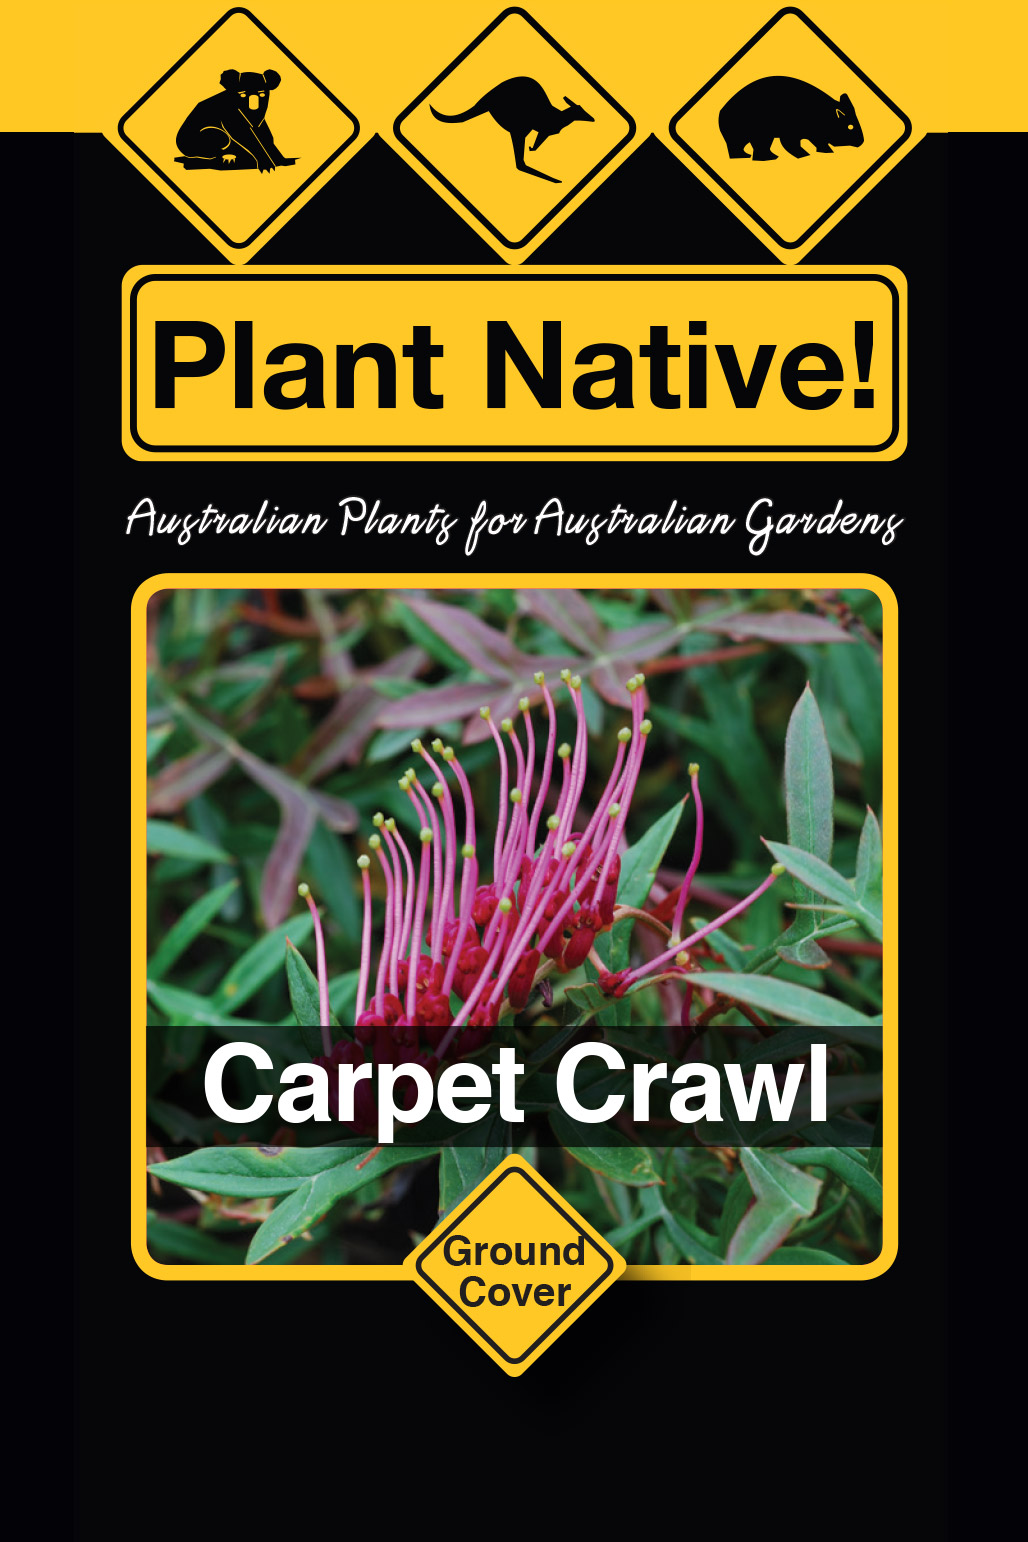 Carpet Crawl - Plant Native!